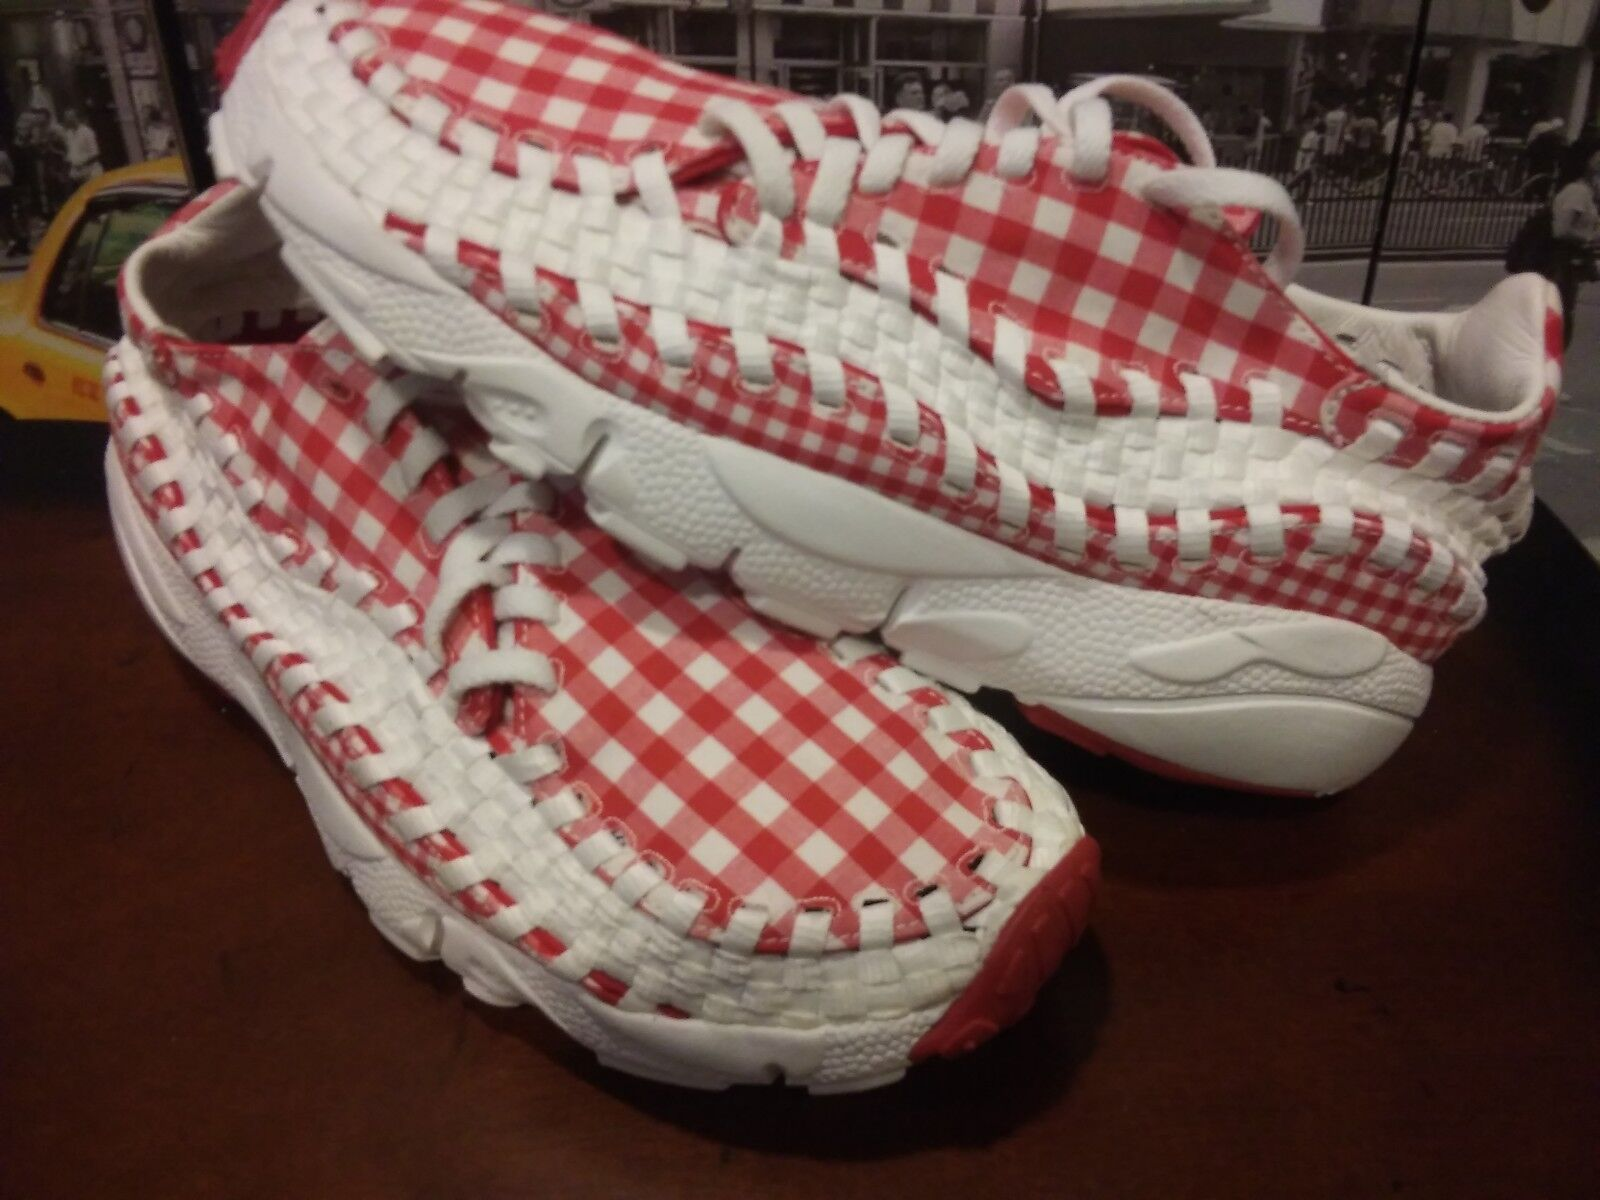 2010 NIKE Air Footscape Woven FreeMotion Red Summit White (417725-600) US 9.5